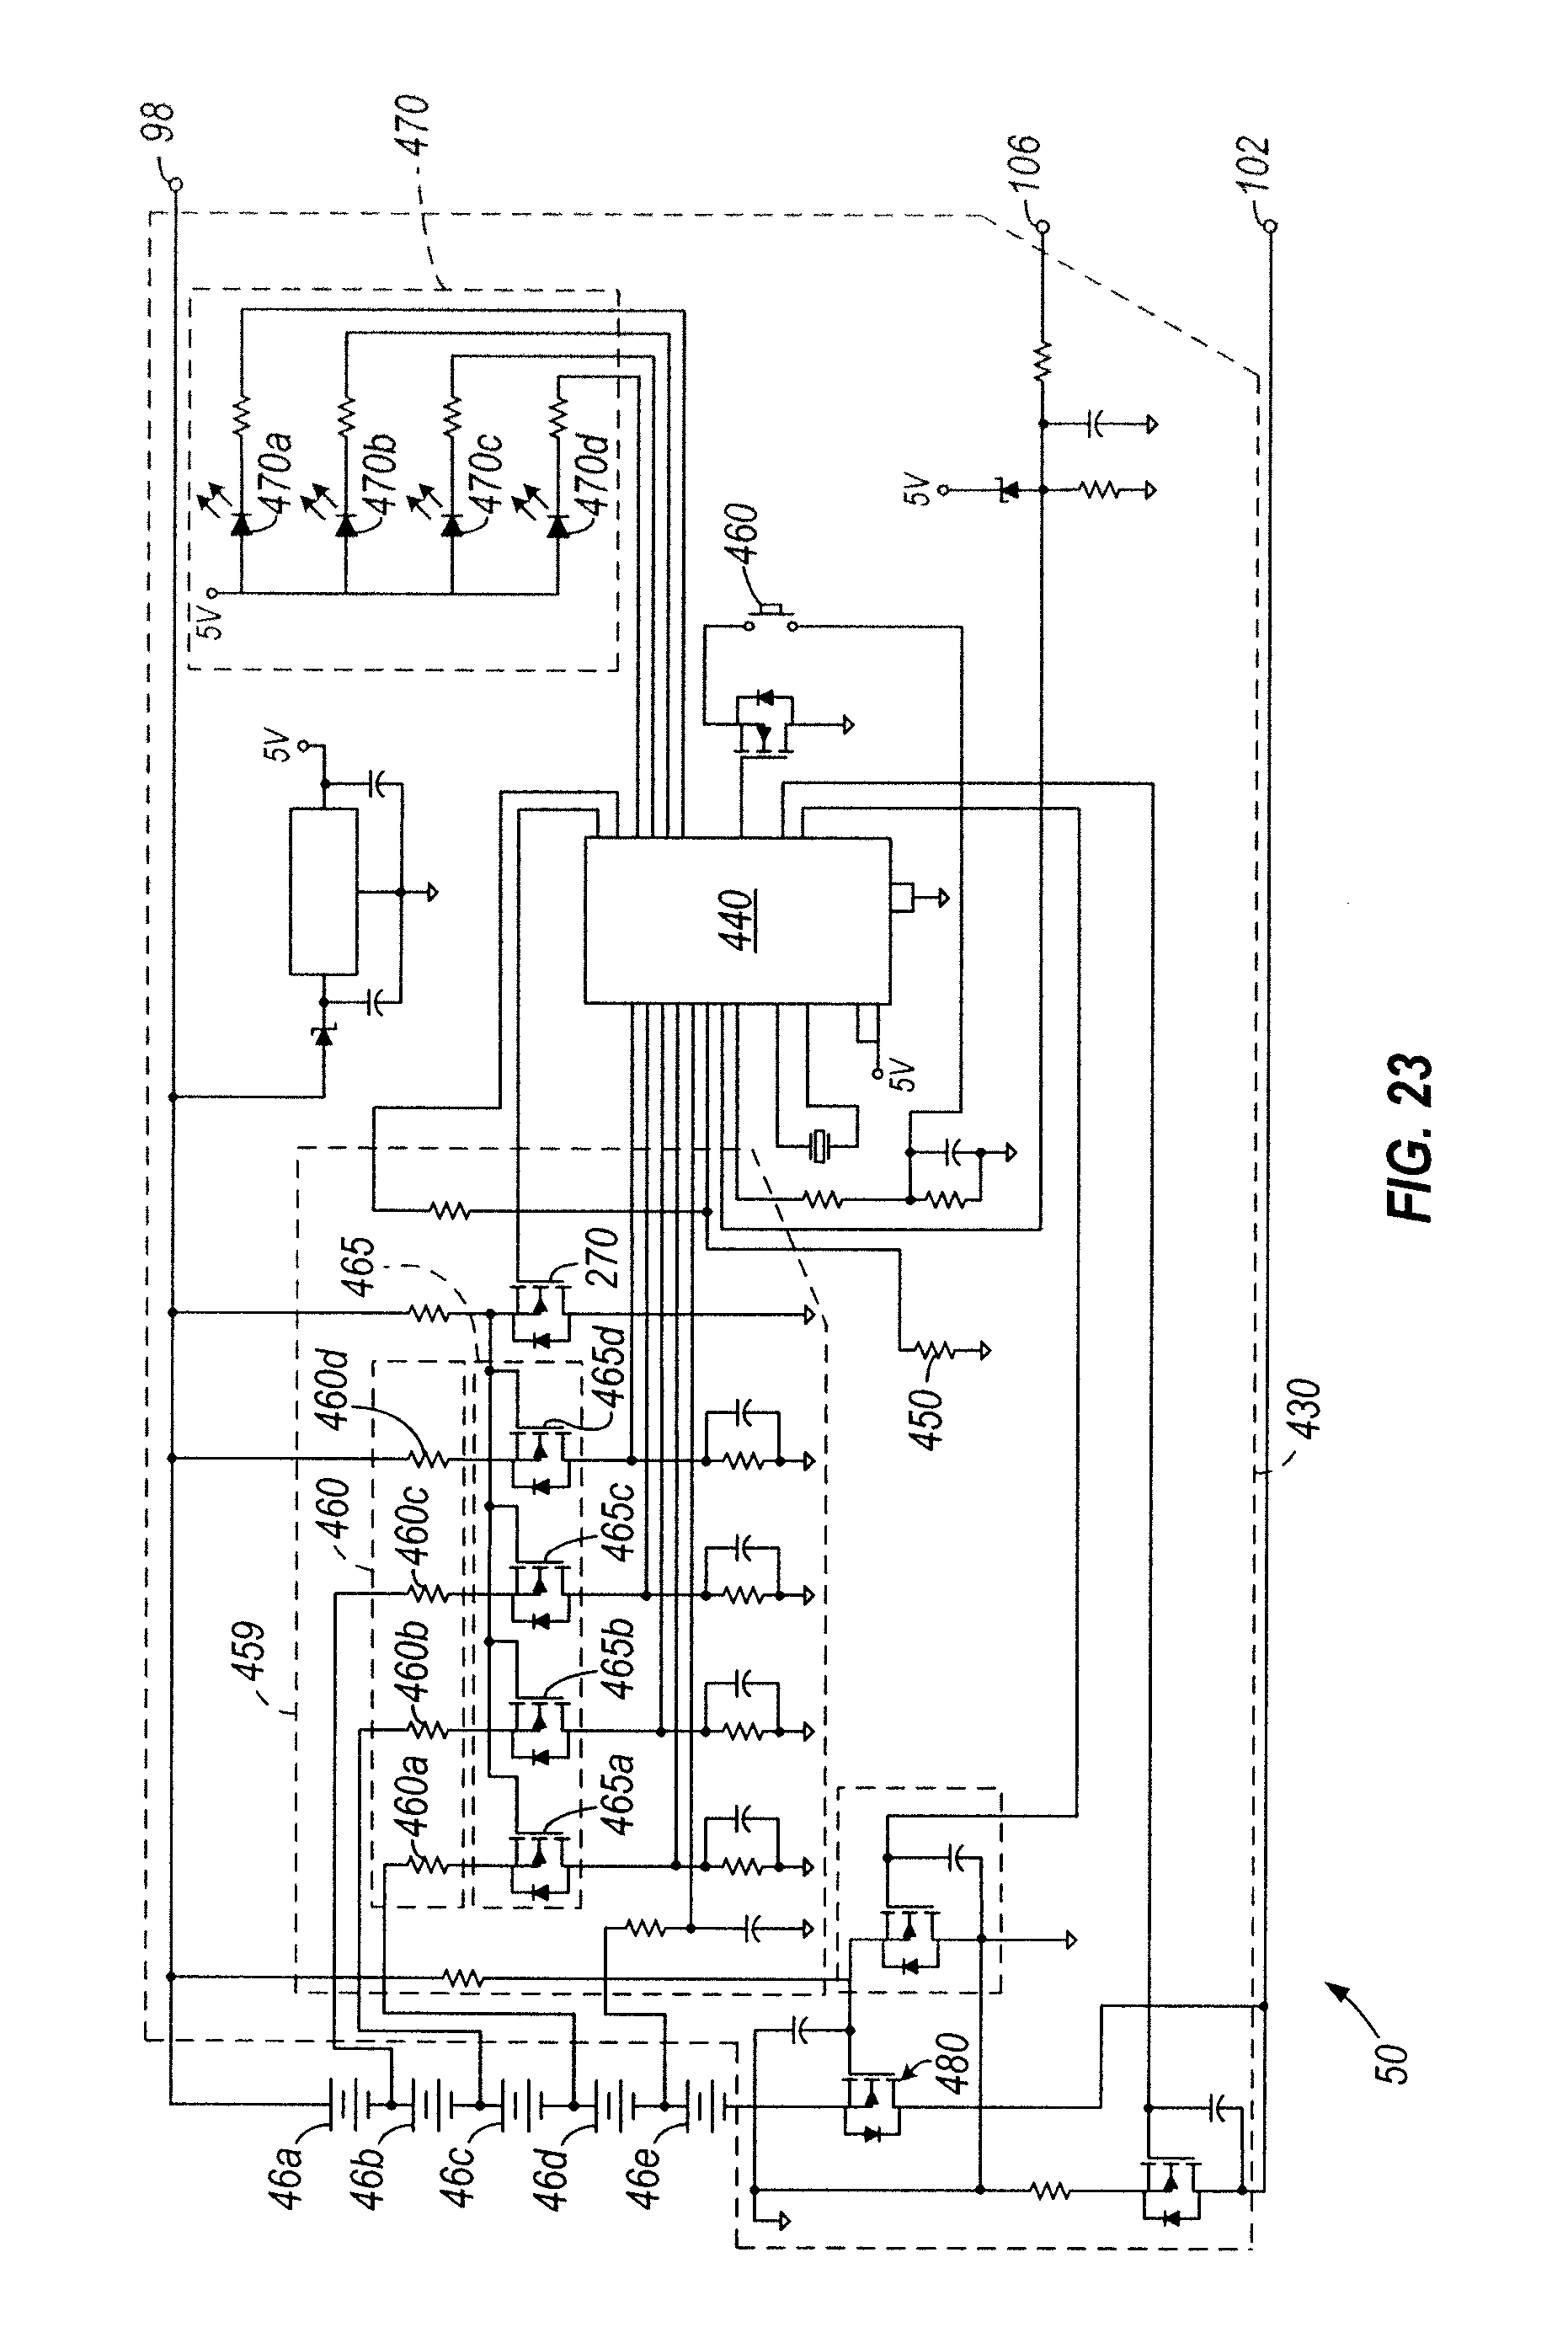 patent us7554290 - lithium-based battery pack for a hand-held power tool